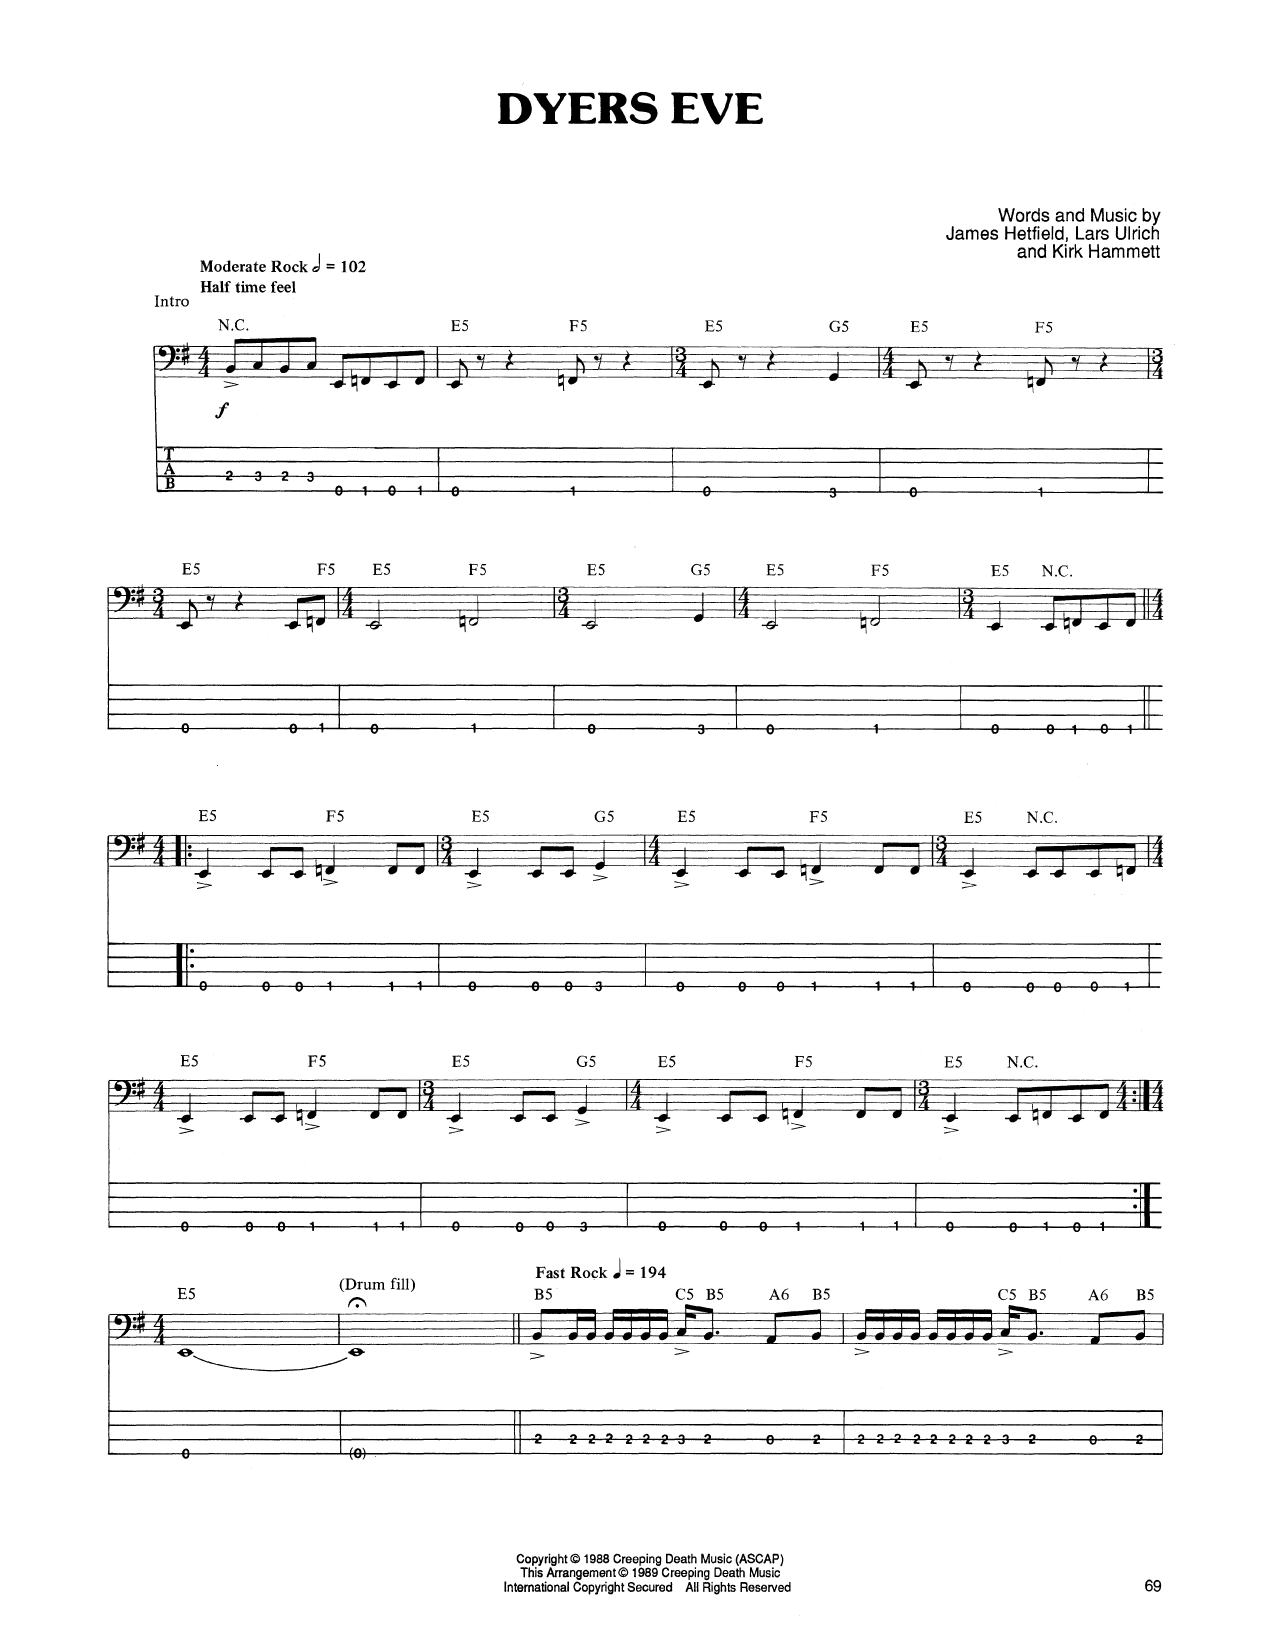 Dyers Eve Sheet Music